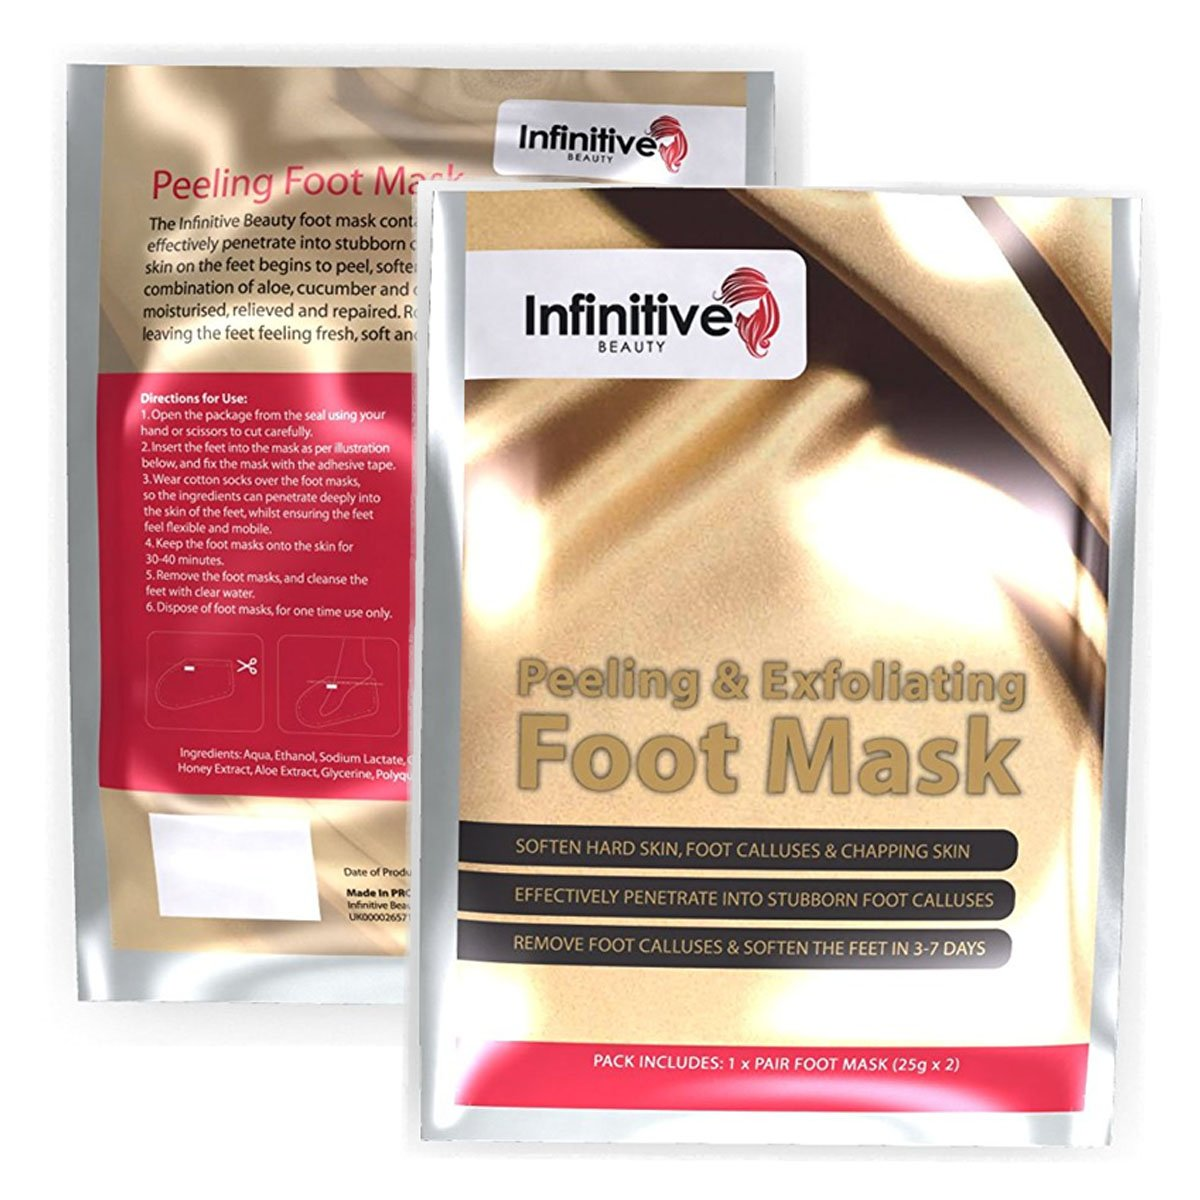 10 x Pairs Of Exfoliating Foot Mask Peeling Feet Masks Pair, Exfoliator, Exfo... by Infinitive Beauty